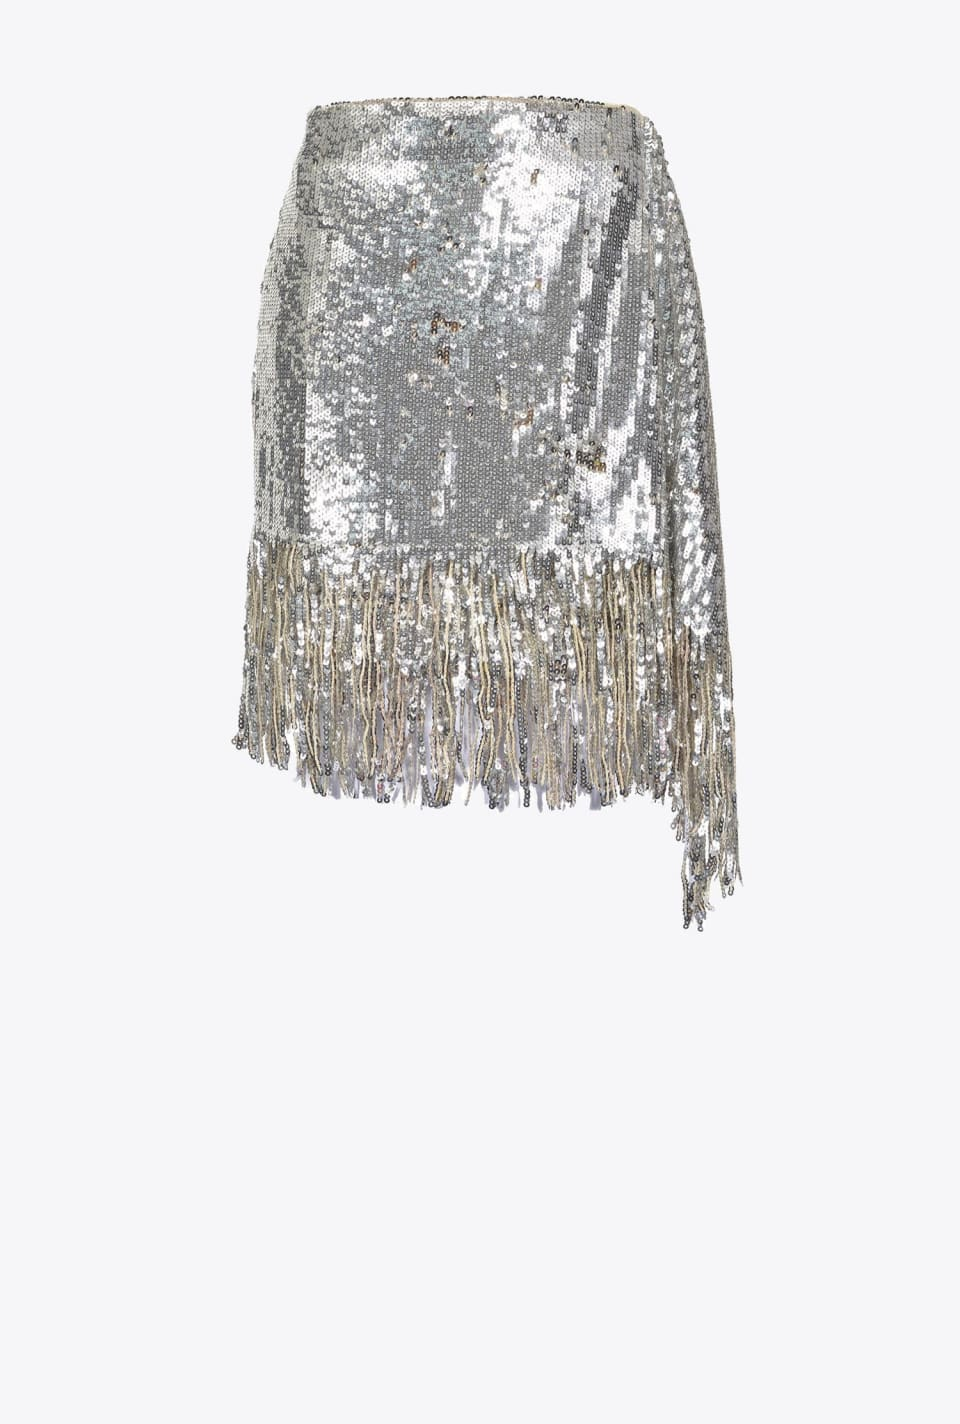 Mini skirt in full sequins with fringe - Pinko